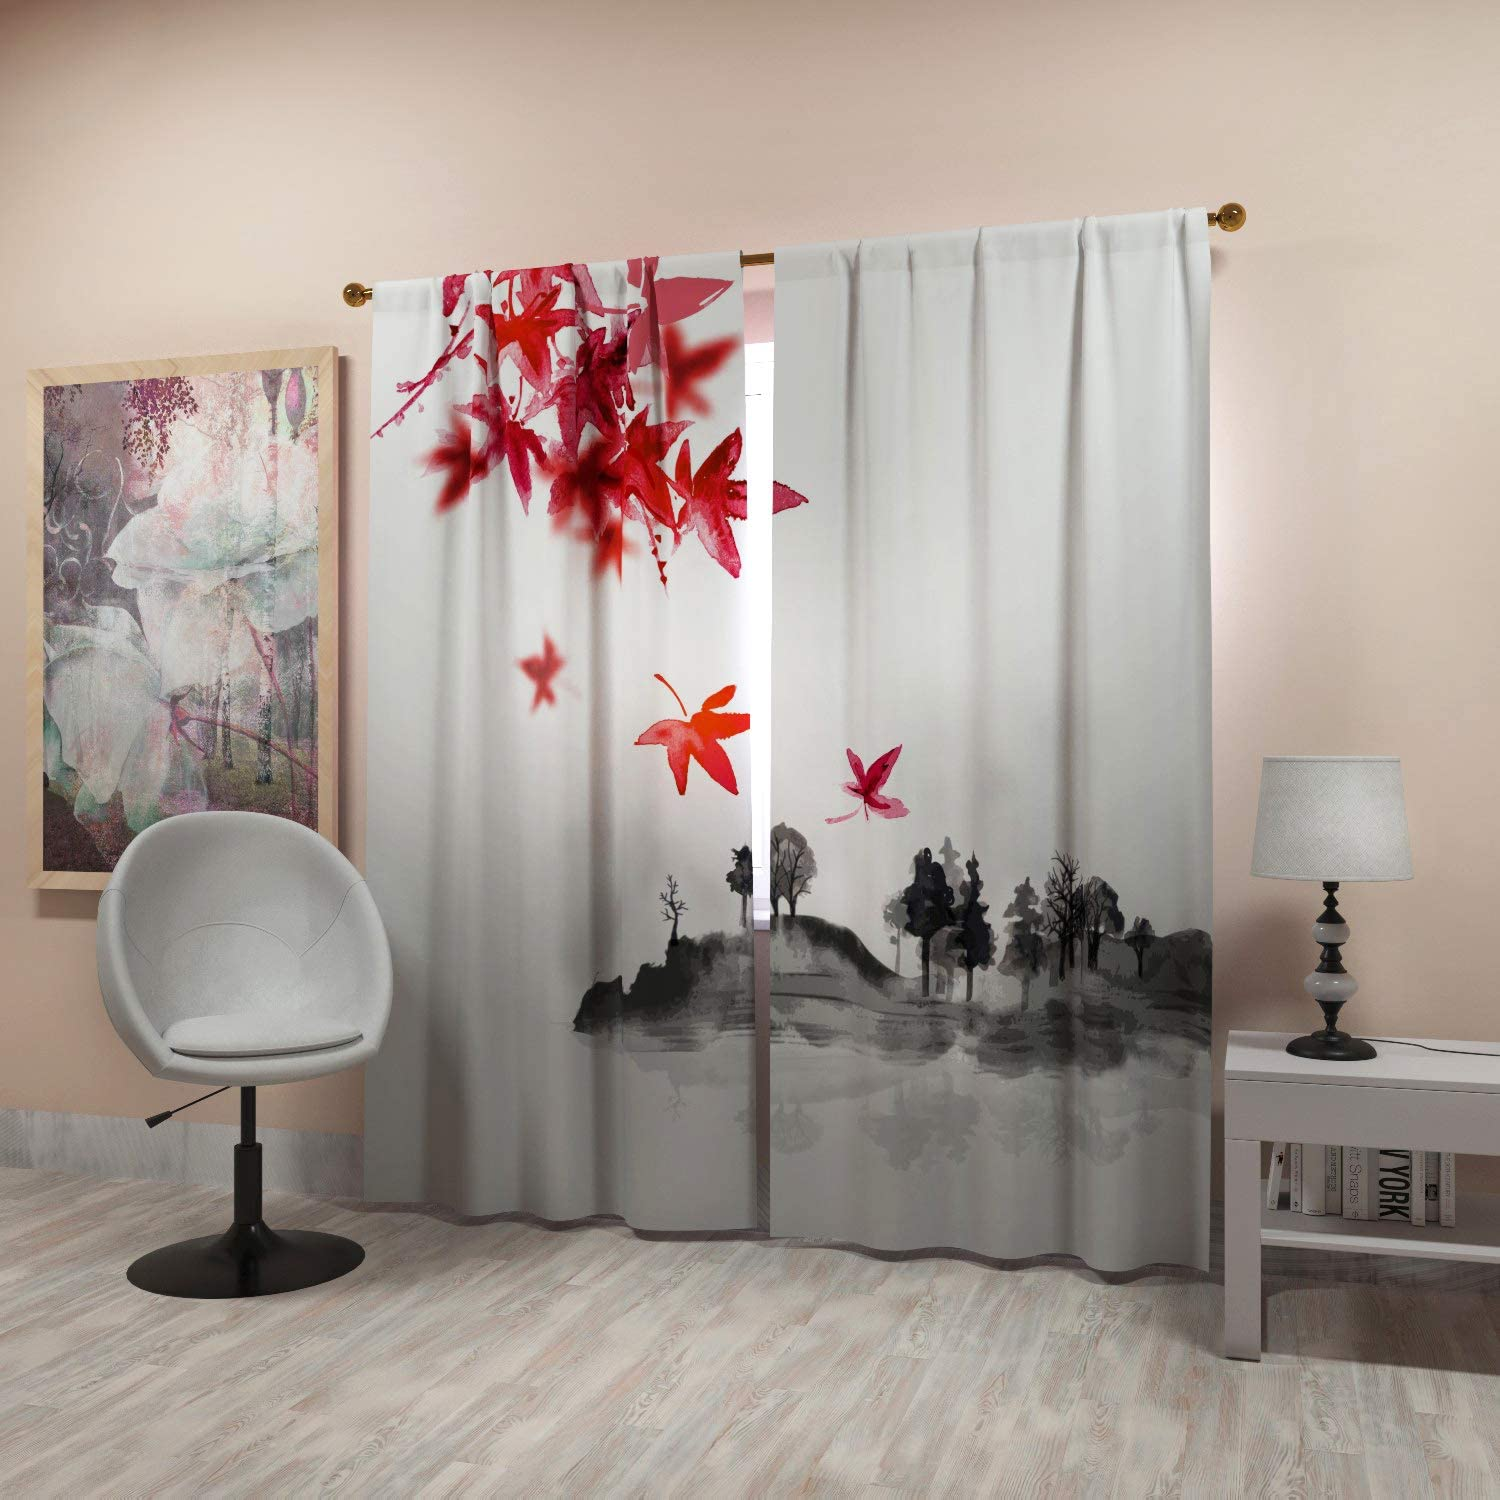 Factory4me Asian Style Curtains With Autumn Leaves Beautiful Modern Room Darkening 84 Inches Long For Living Room Bedroom Kitchen Dining Room Stylish White Black Red Gray Rod Pocket Drapes Home